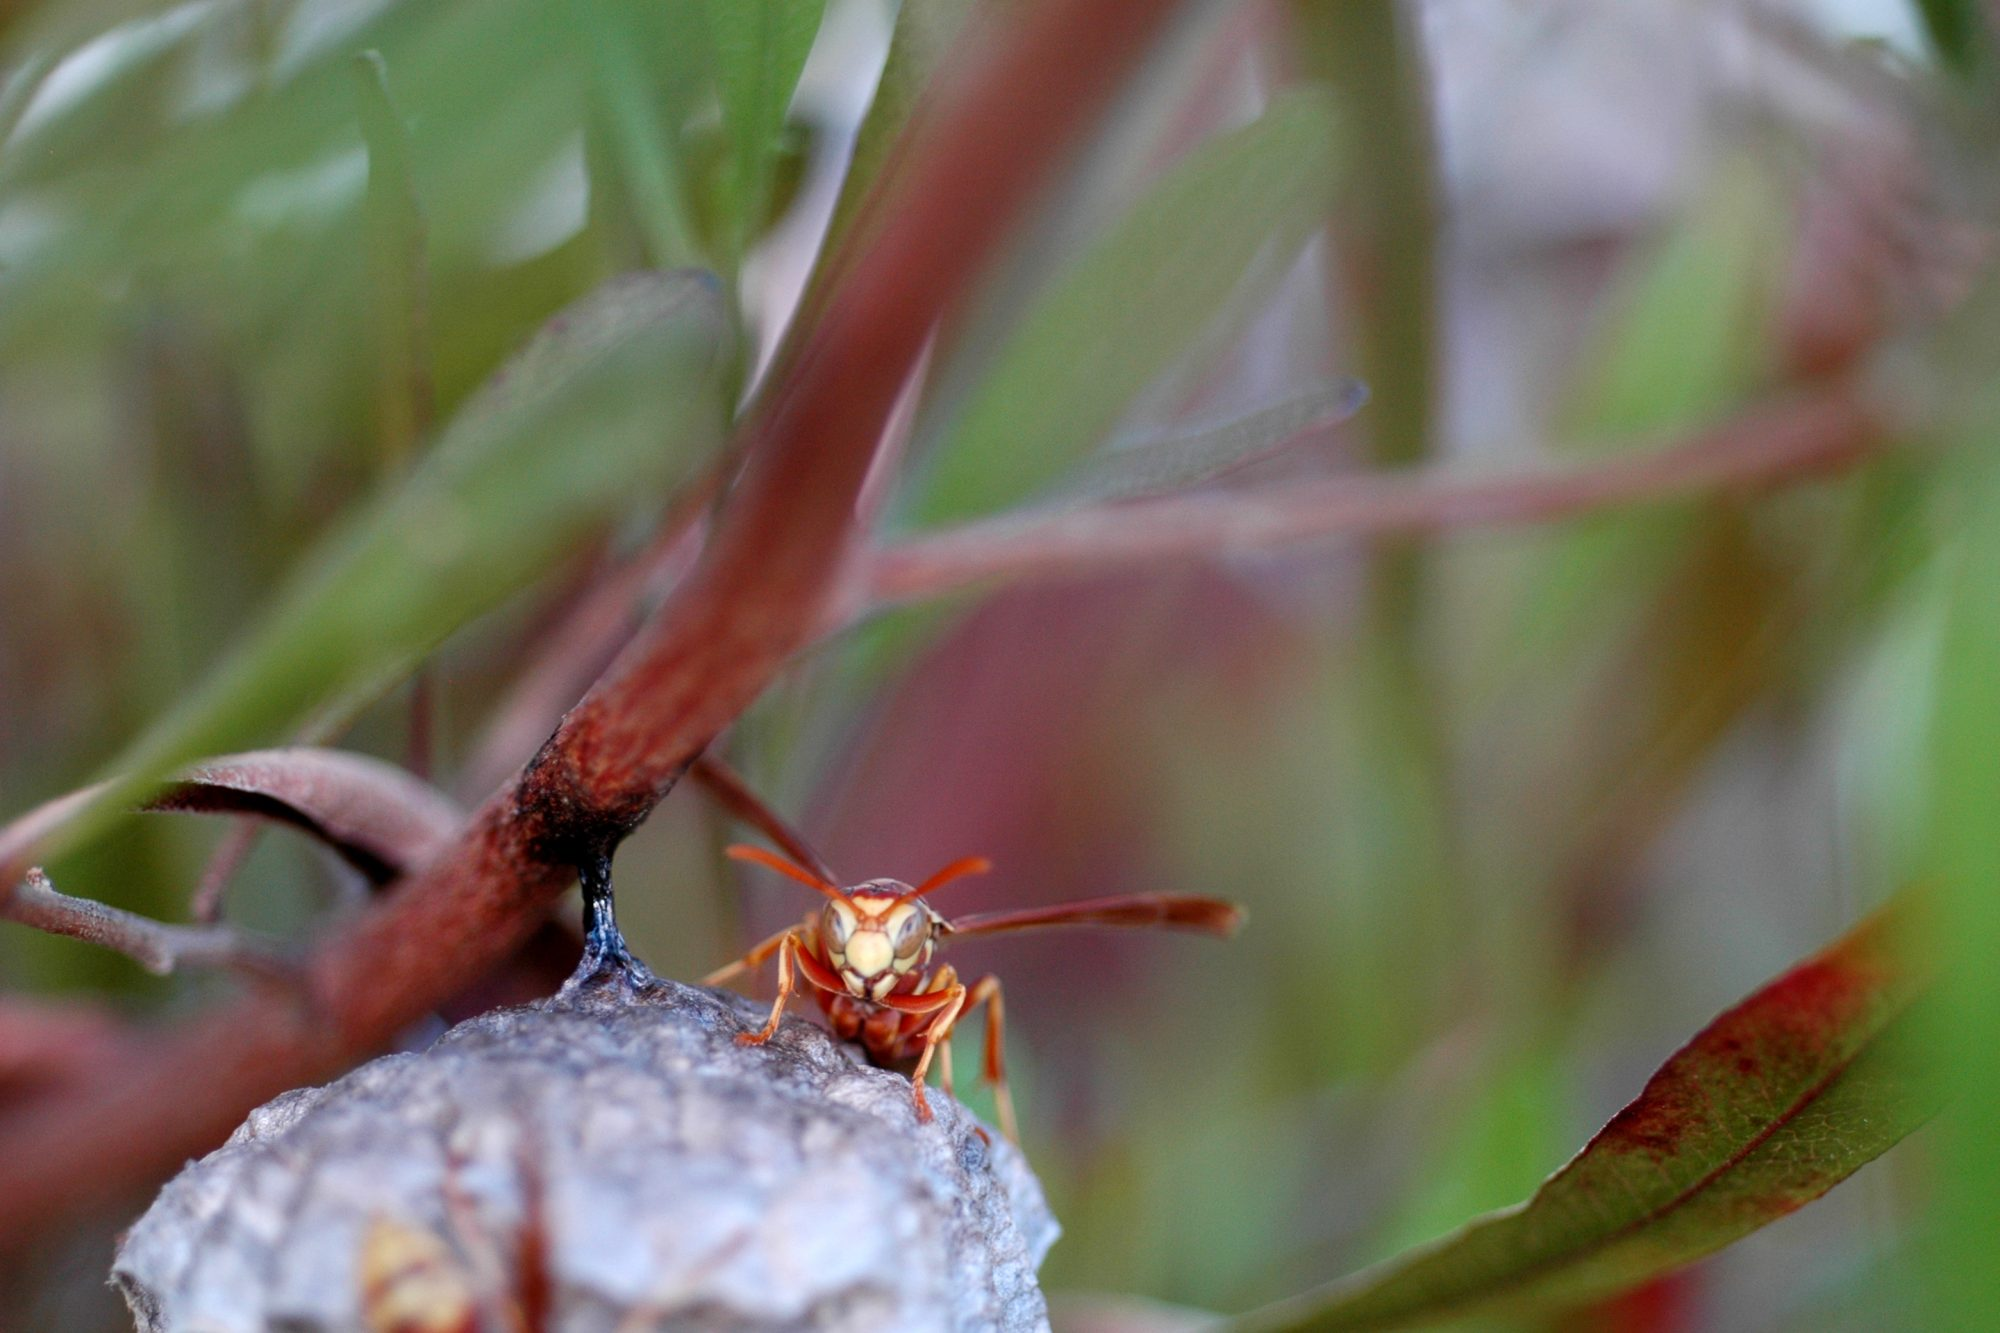 Red Wasp on Leaves